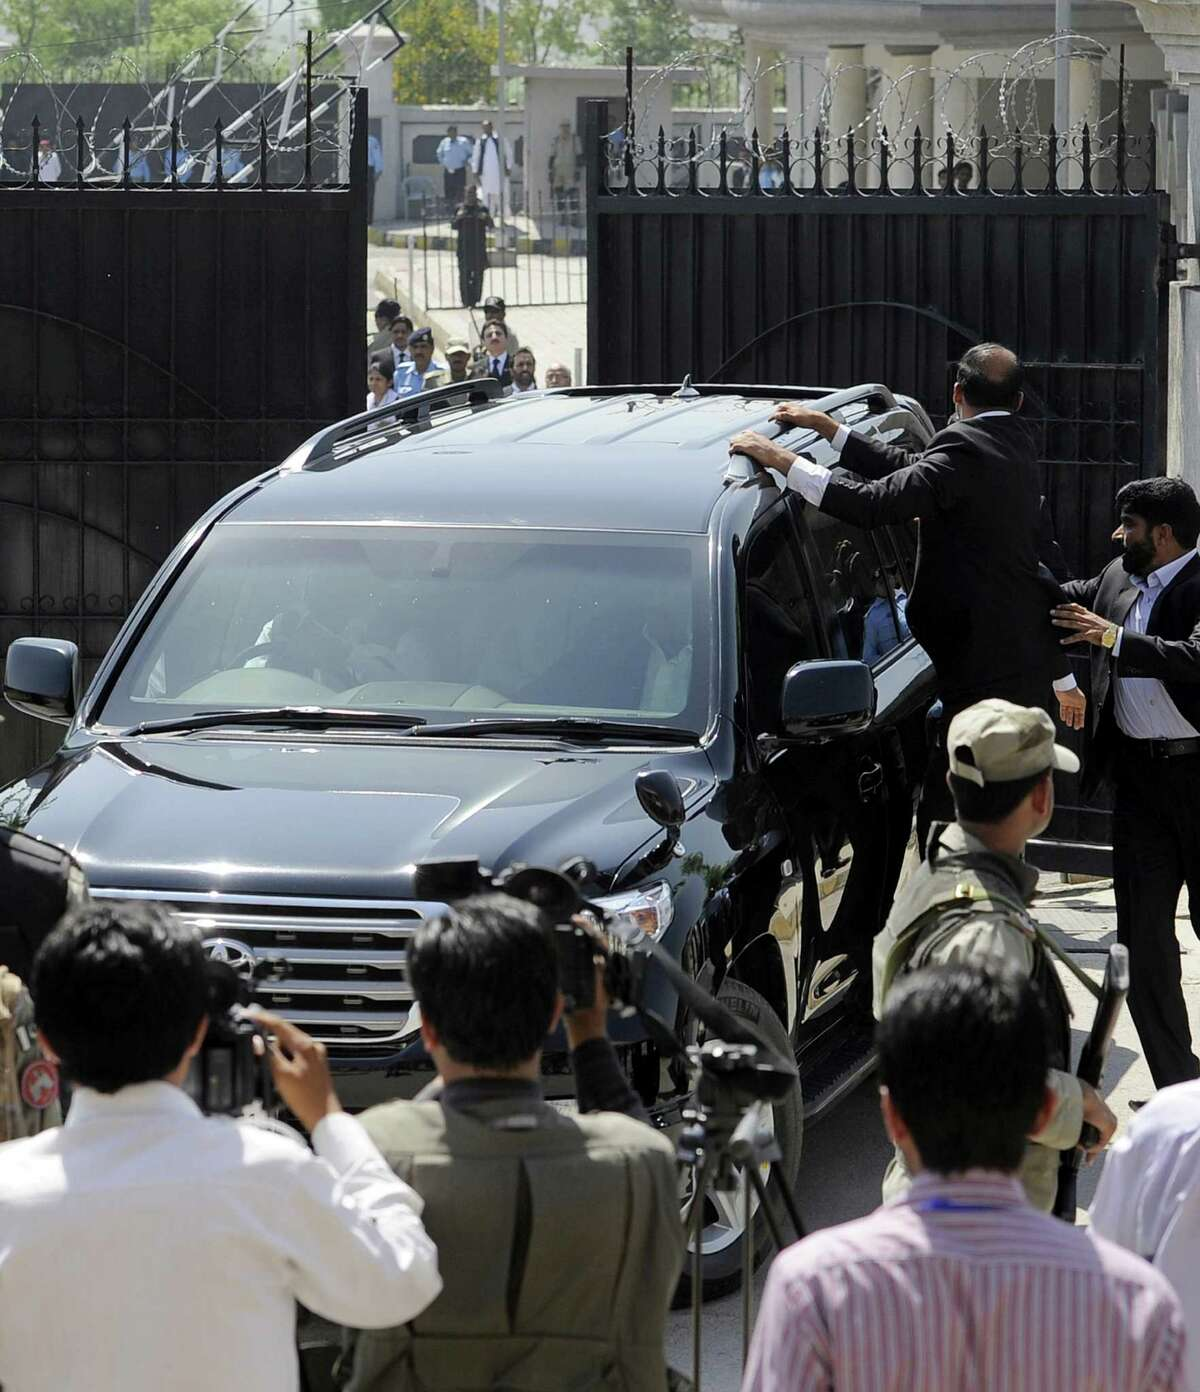 """Security forces escort a vehicle carrying former Pakistani President Pervez Musharraf as he flees from court in Islamabad after his bail was revoked. The judge ordered the city's police chief to appear before the court to explain why Musharraf was not arrested and to ensure action is taken against policemen """"who remained napping"""" instead of performing their duties."""